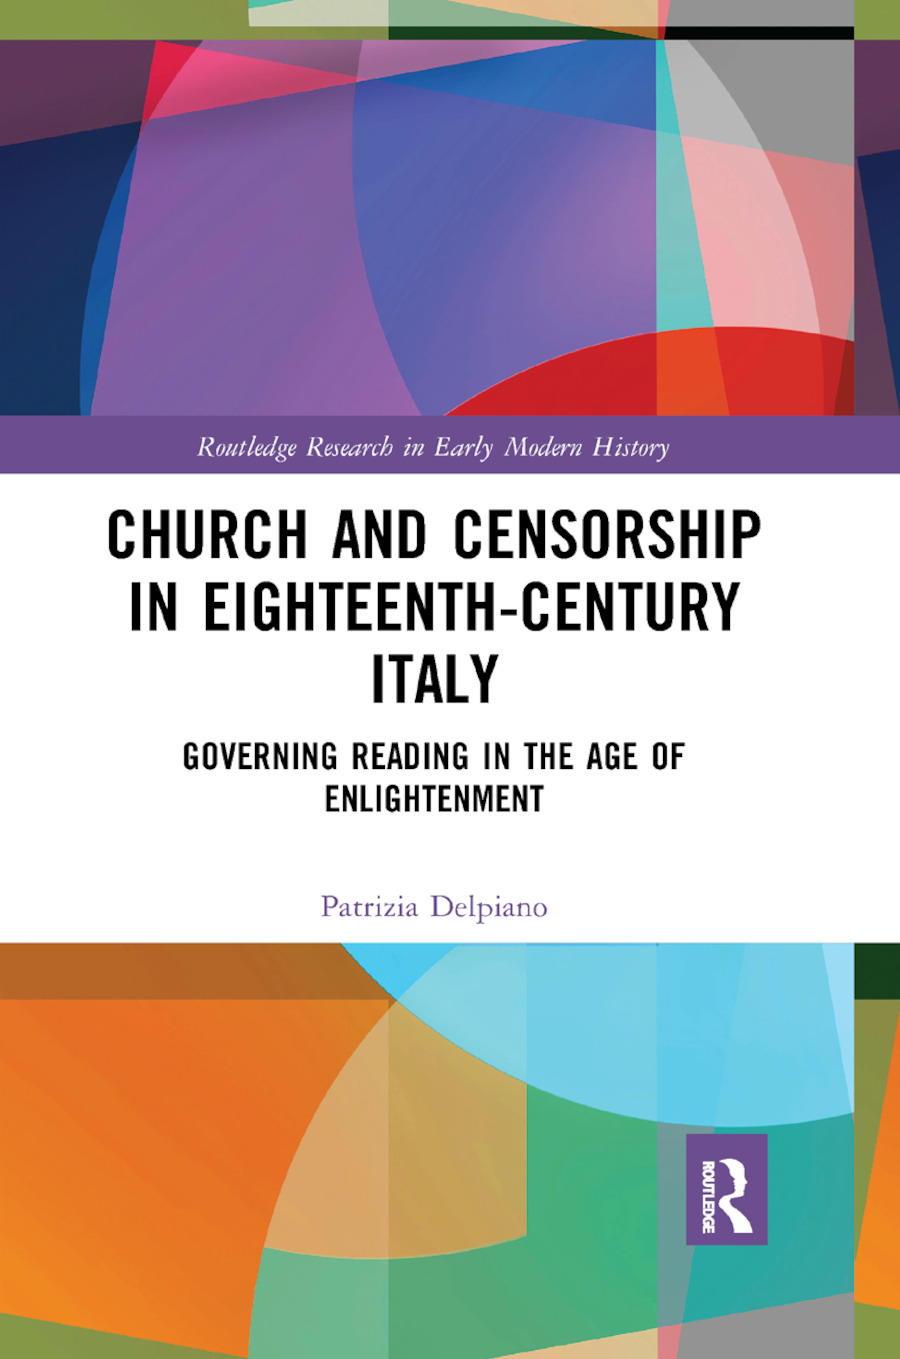 Church and Censorship in Eighteenth-Century Italy: Governing Reading in the Age of Enlightenment, 1st Edition (Paperback) book cover